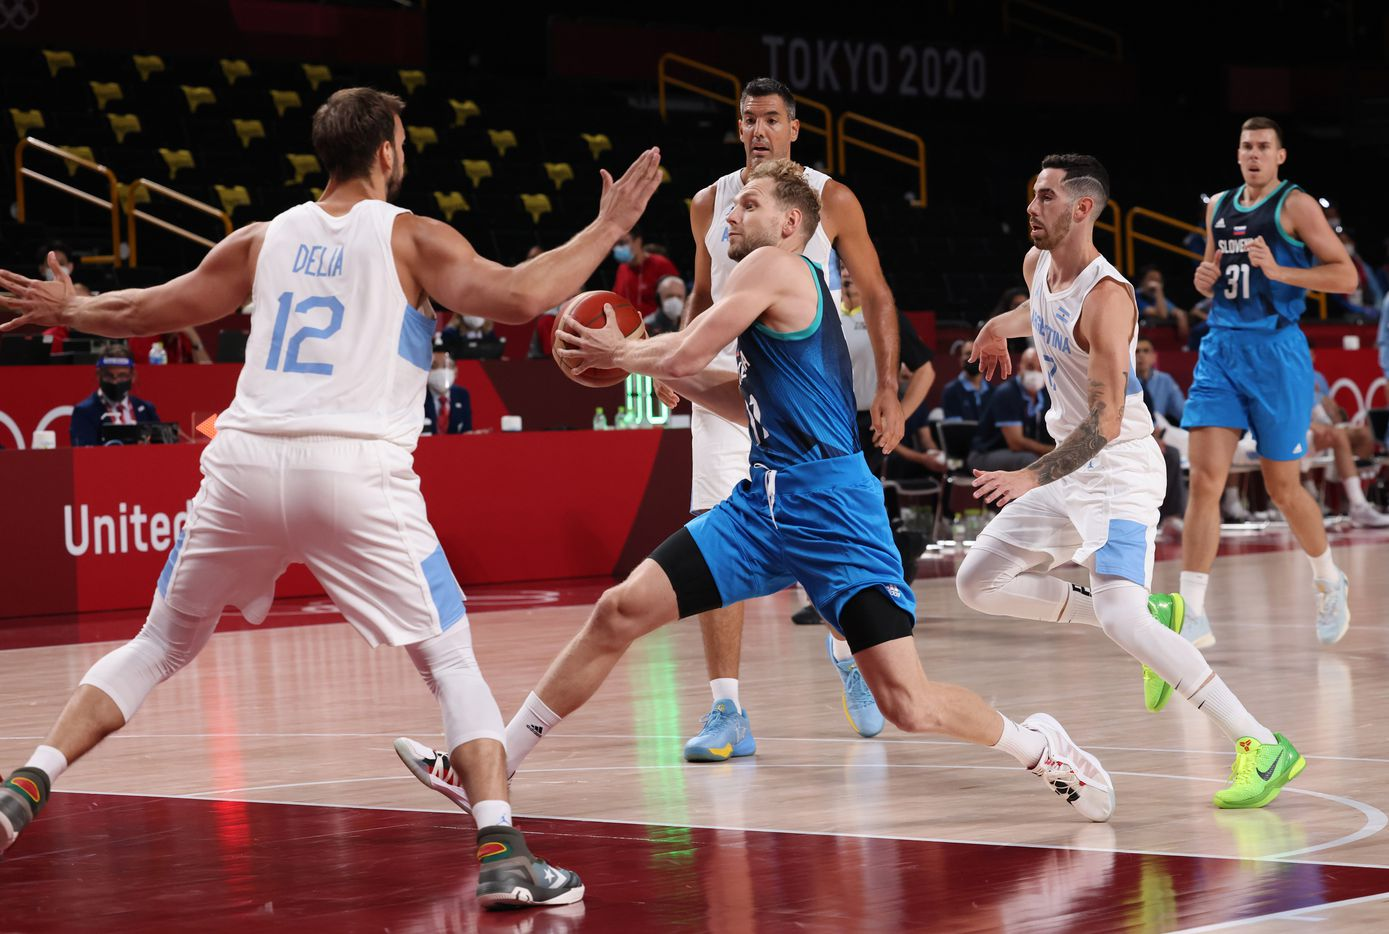 Slovenia's Jaka Blazic (11) drives on Argentina's Marcos Delia (12) in the first half of play during the postponed 2020 Tokyo Olympics at Saitama Super Arena on Monday, July 26, 2021, in Saitama, Japan. Slovenia defeated Argentina 118-100. (Vernon Bryant/The Dallas Morning News)